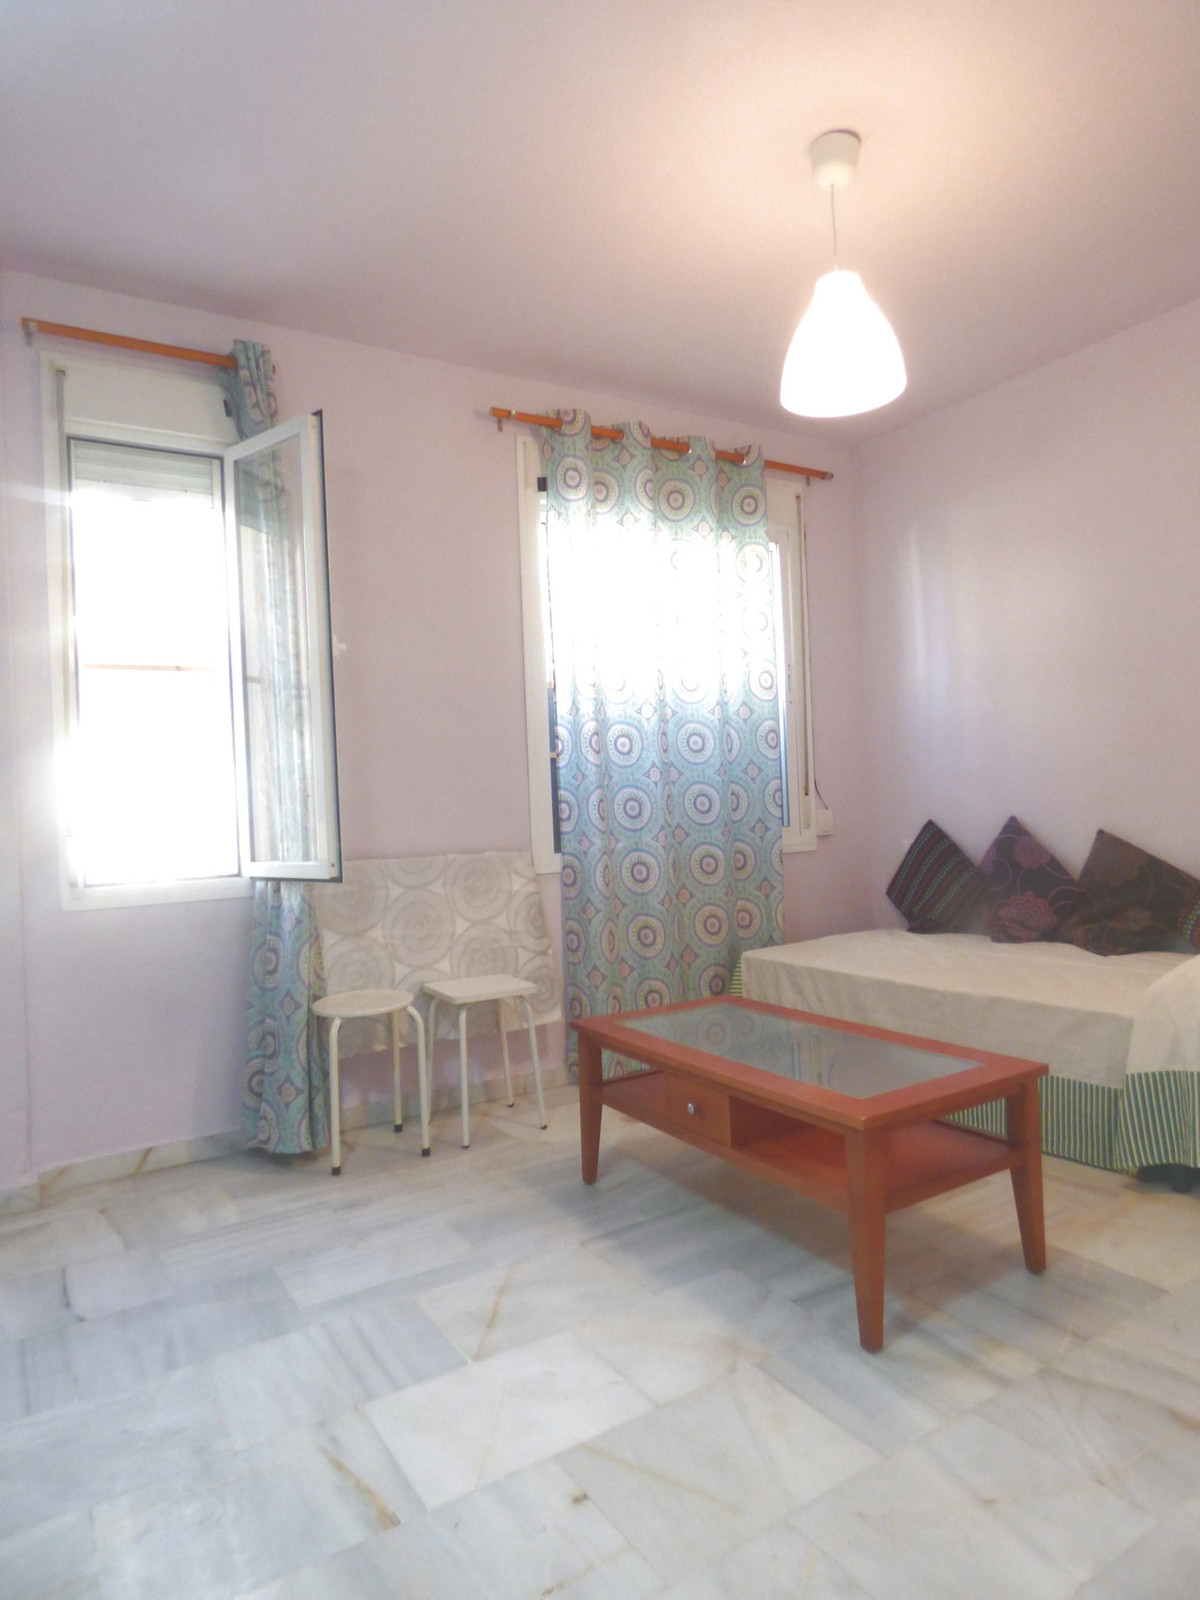 Studio for sale in Mijas, located next to the Cortes Ingles. It is a low, comfortable and flirtatiou, Spain